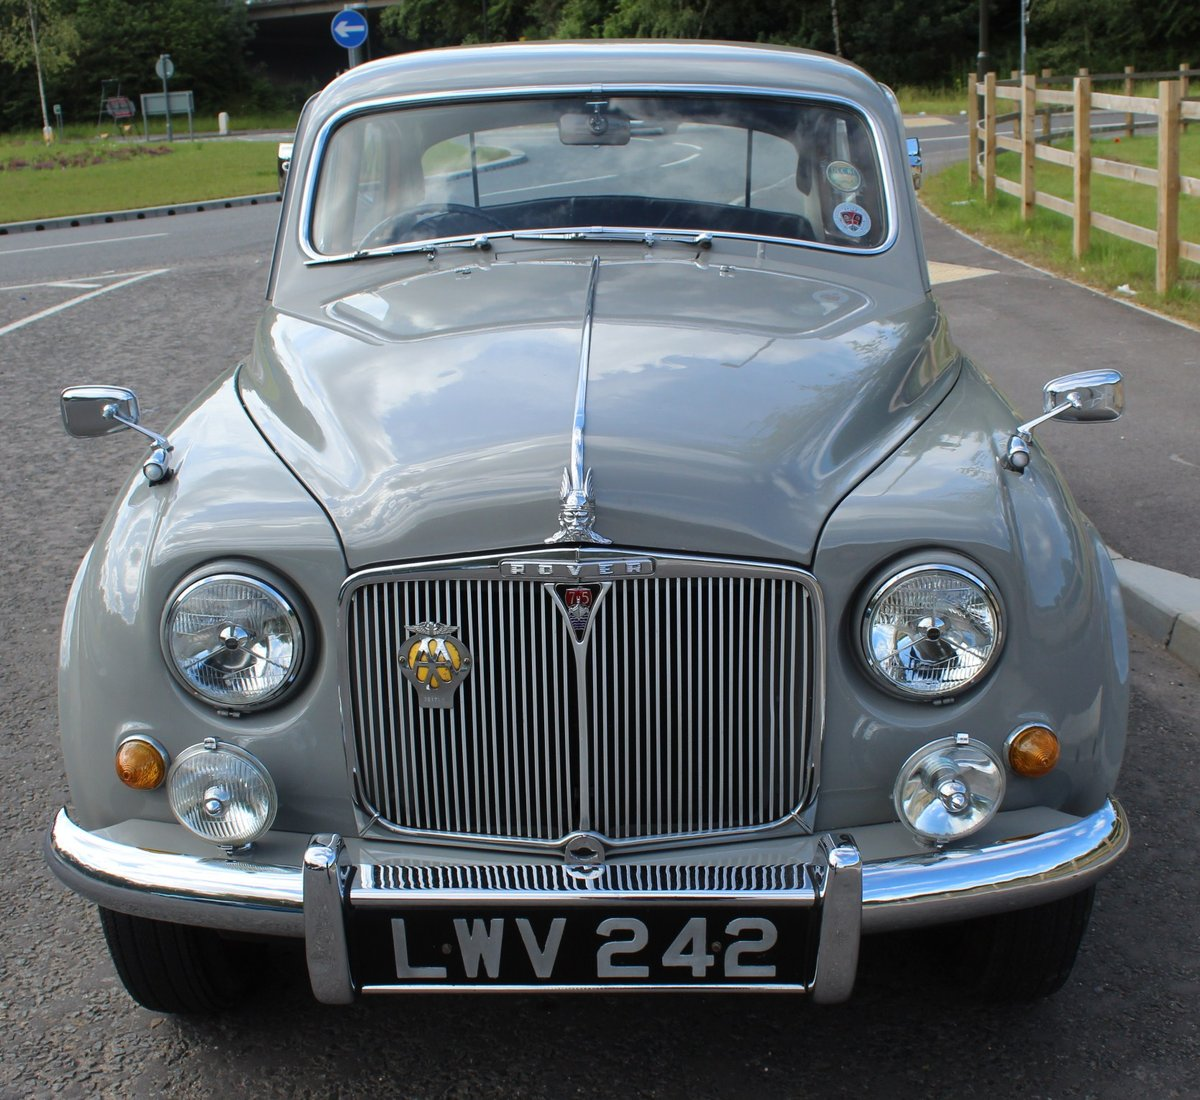 1955 Rover P4 75 Saloon 6 Cylinder Excellent Condition SOLD (picture 2 of 6)